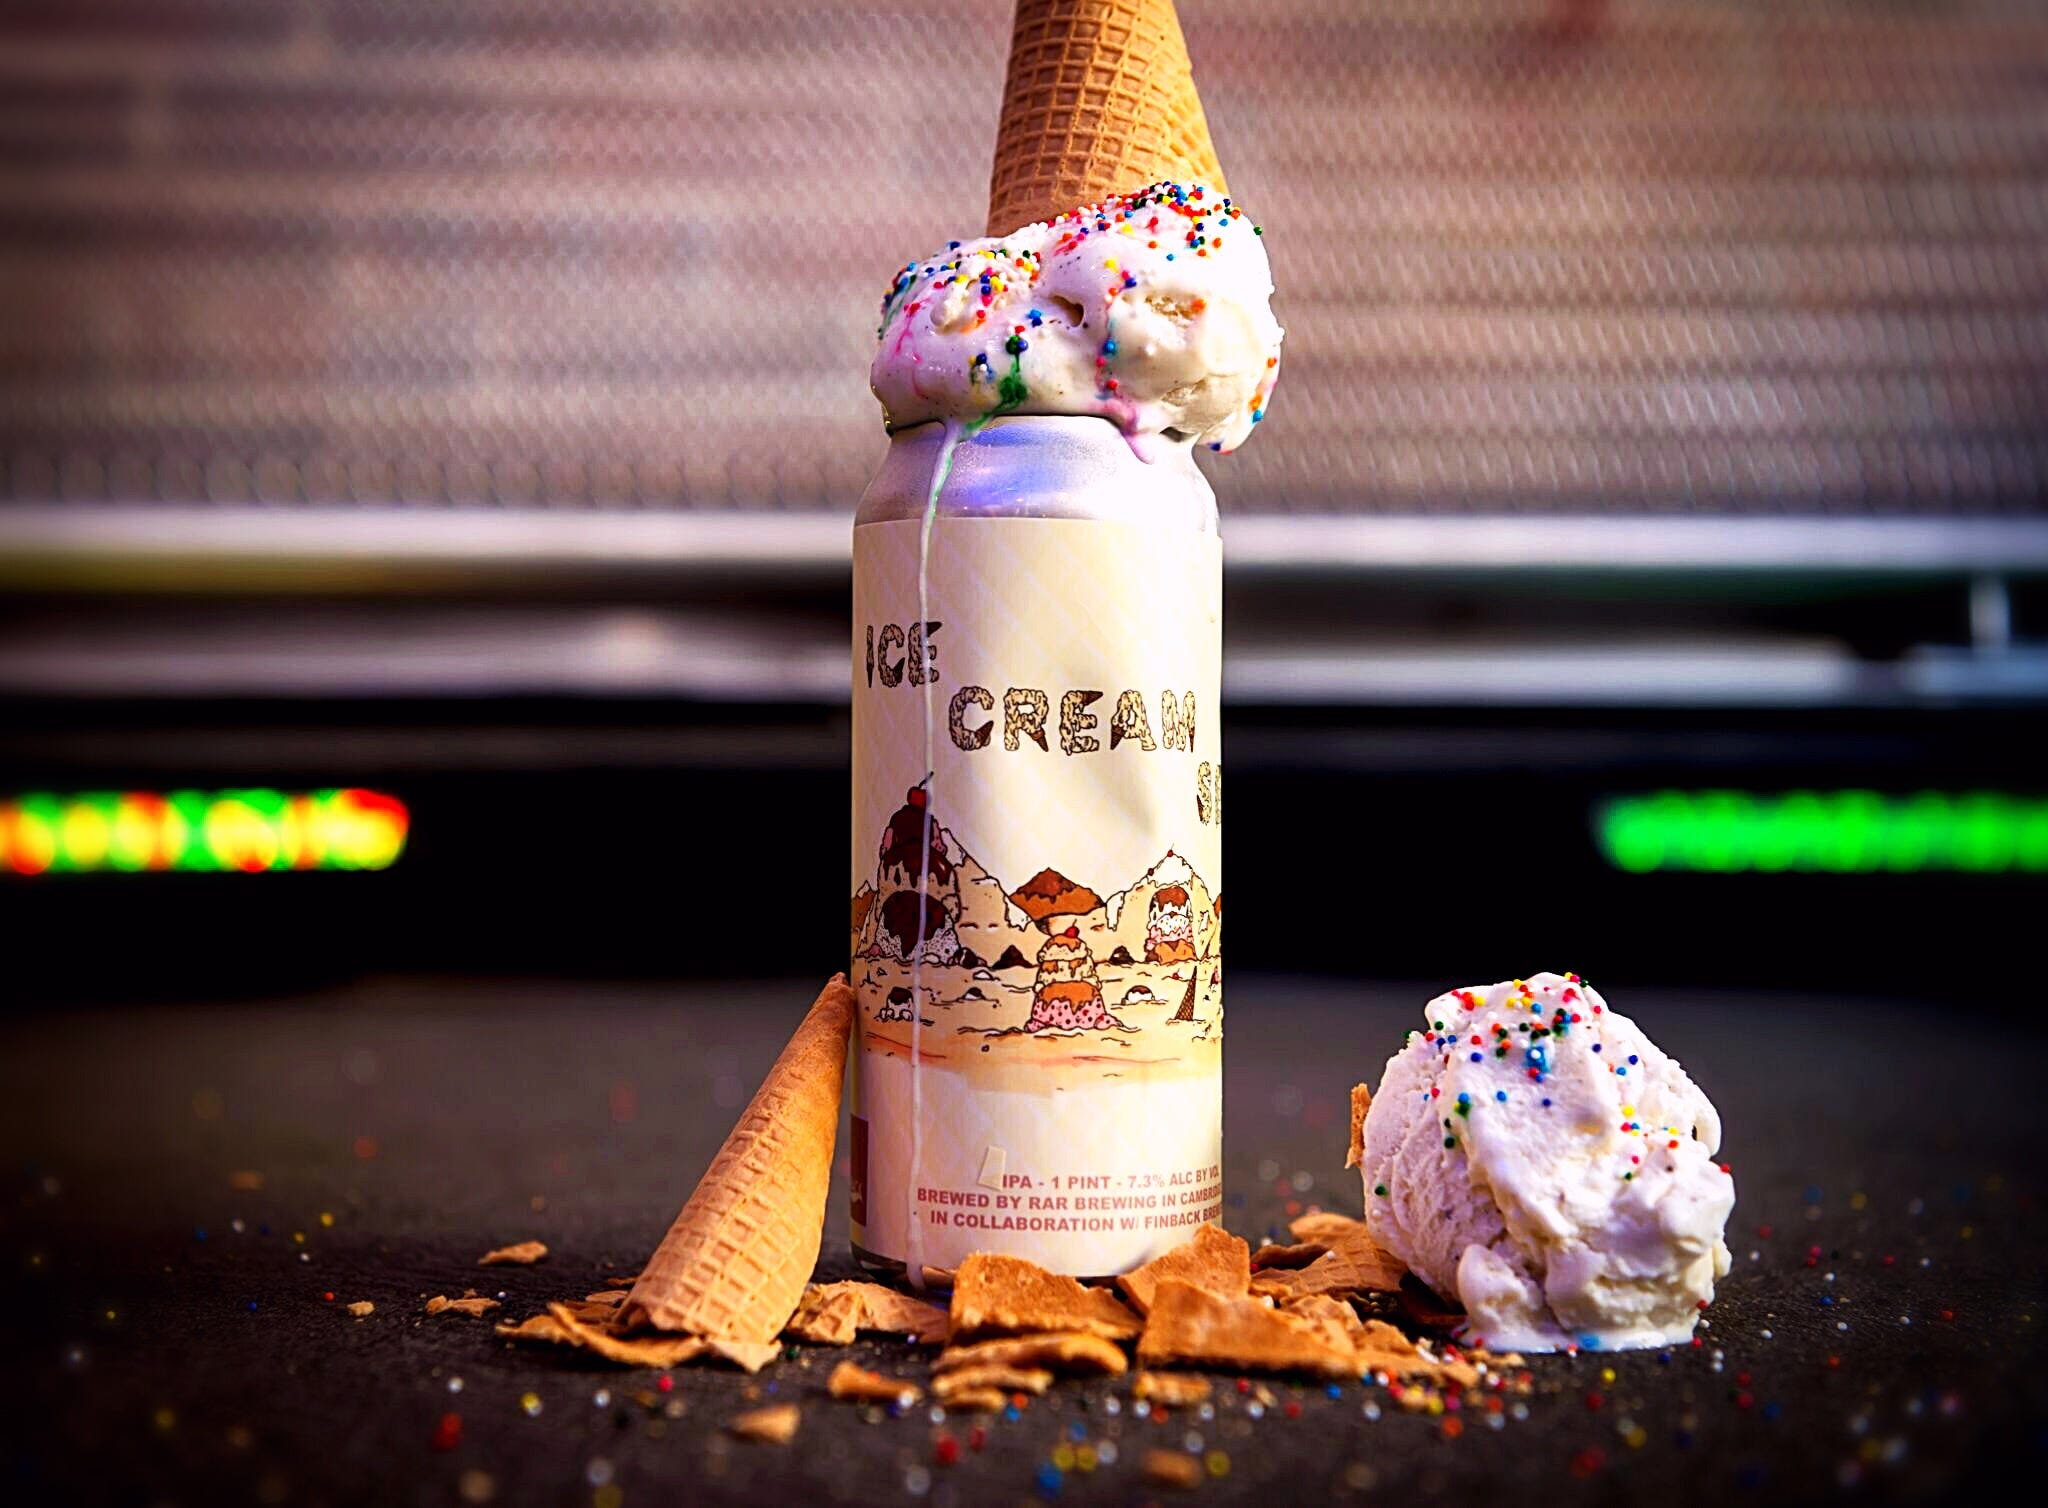 A double IPA brewed with ice cream cones and vanilla beans. Ice Cream Sea by RAR Brewing.